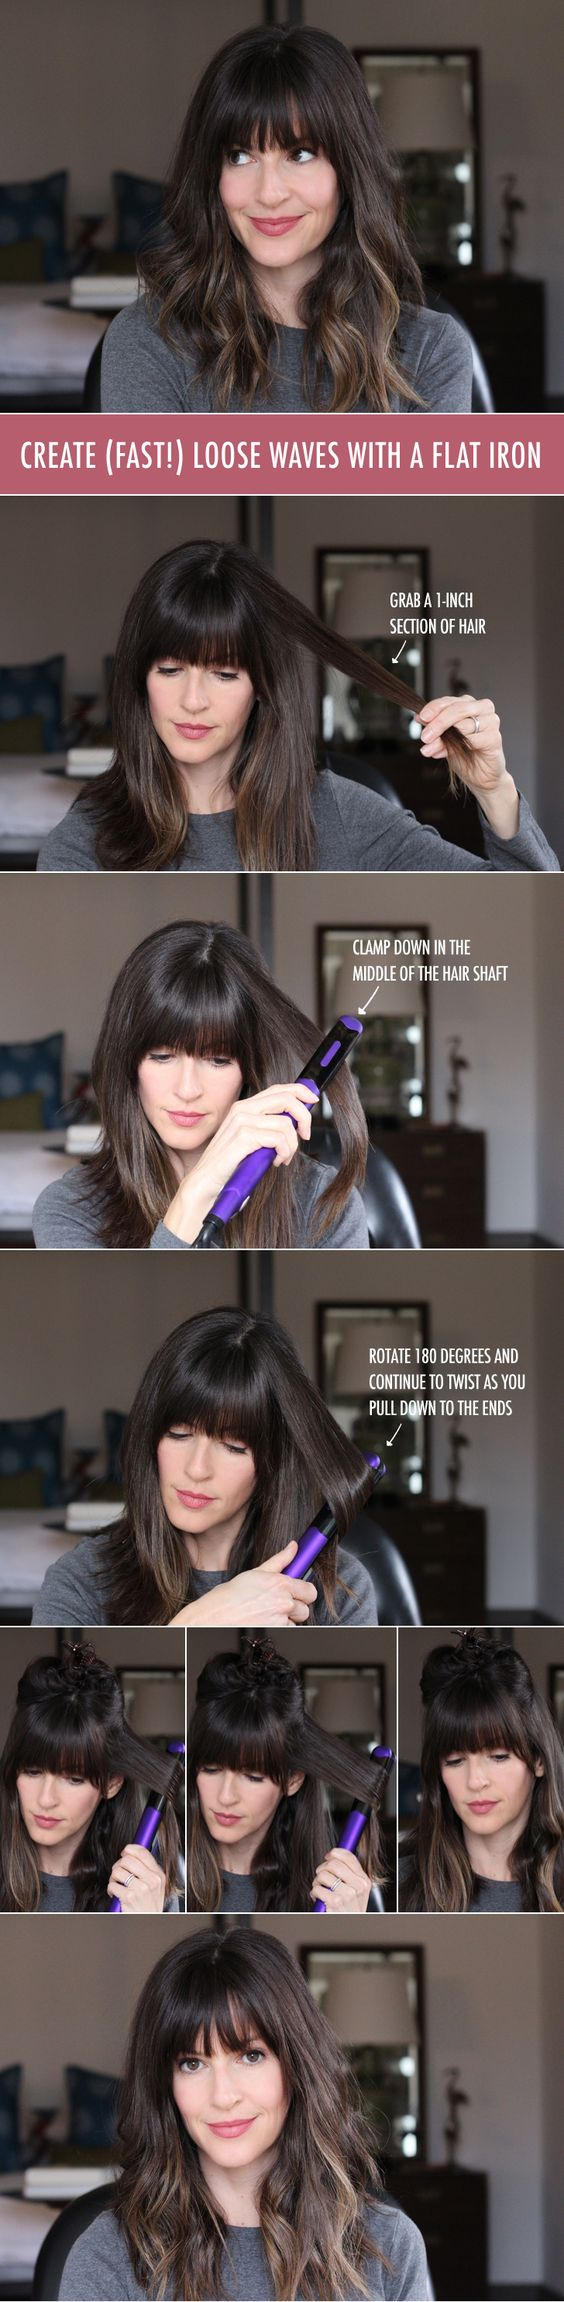 How to create waves with a flat iron. #sallybeauty #ad